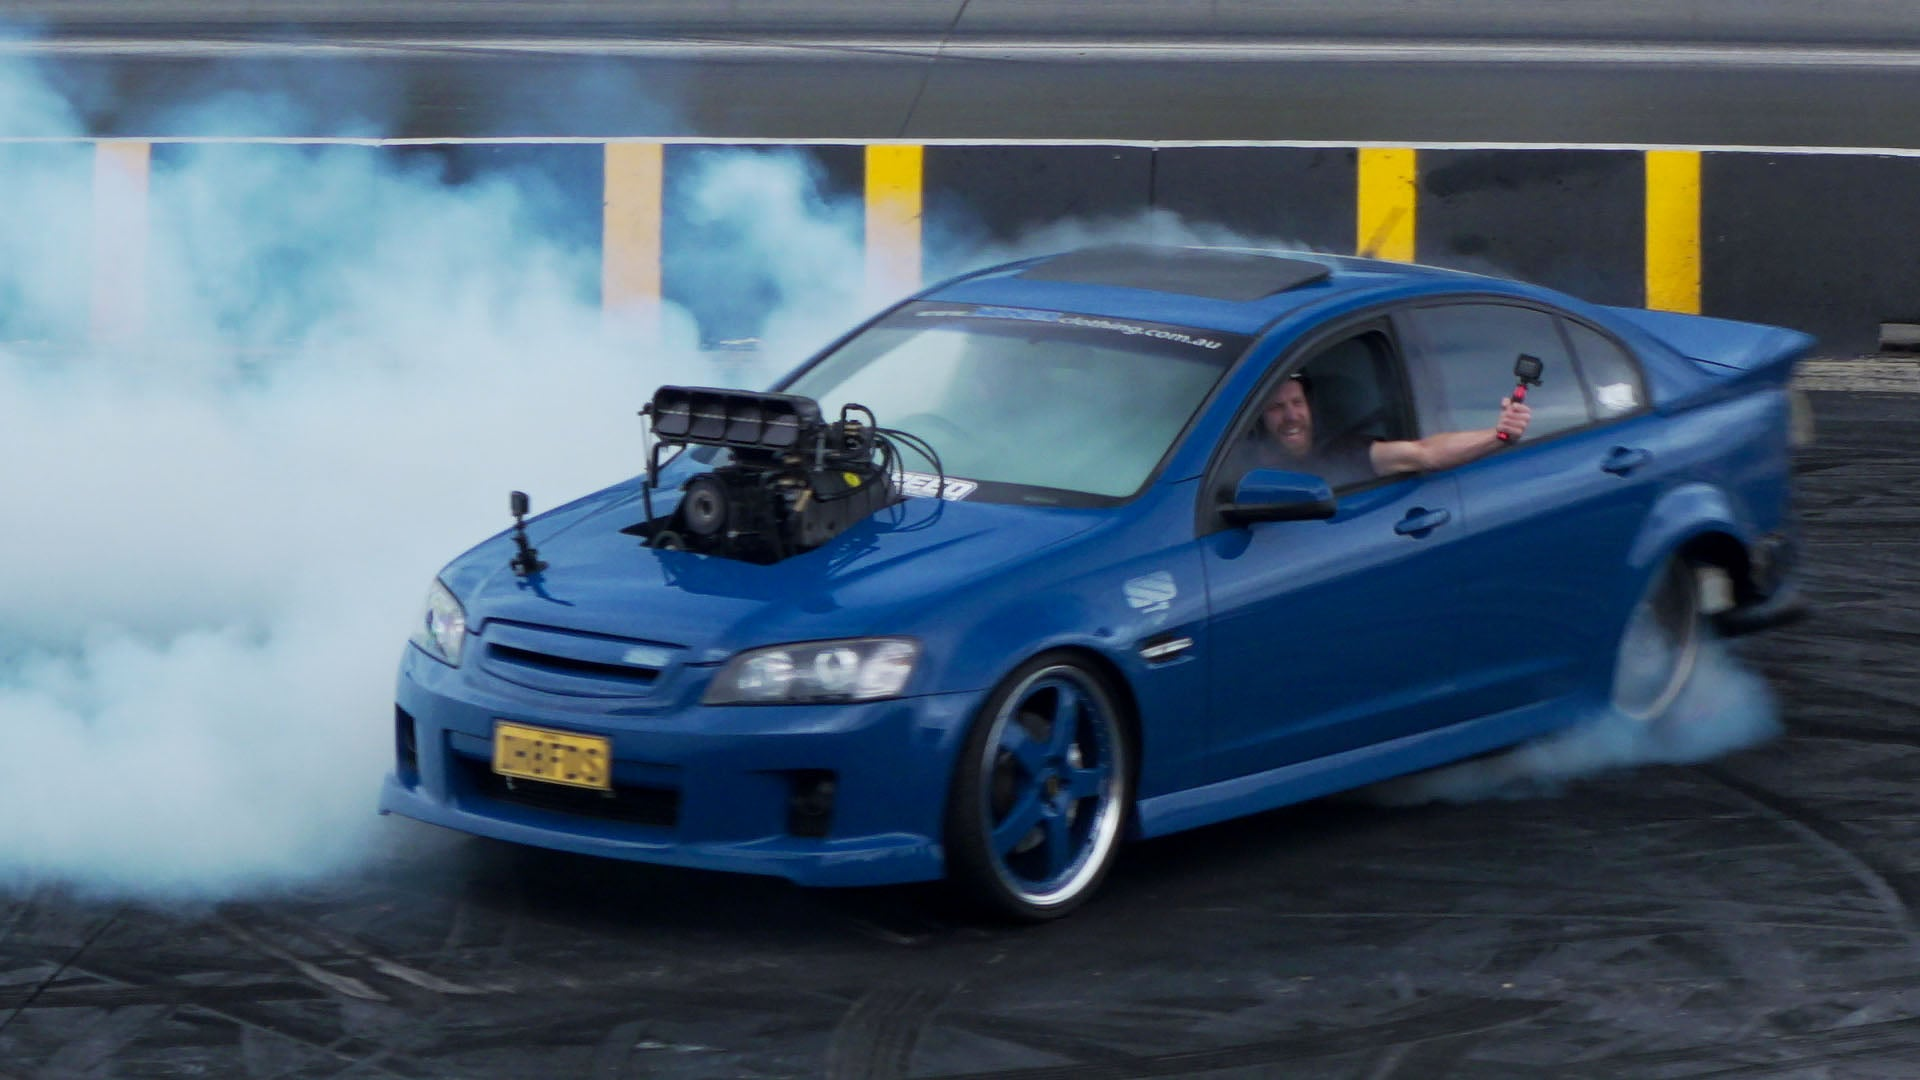 Build A BMW >> 1000hp Big Blower Street Car?? Holden VE Commodore Burnout Car Sings t - Hoonigan